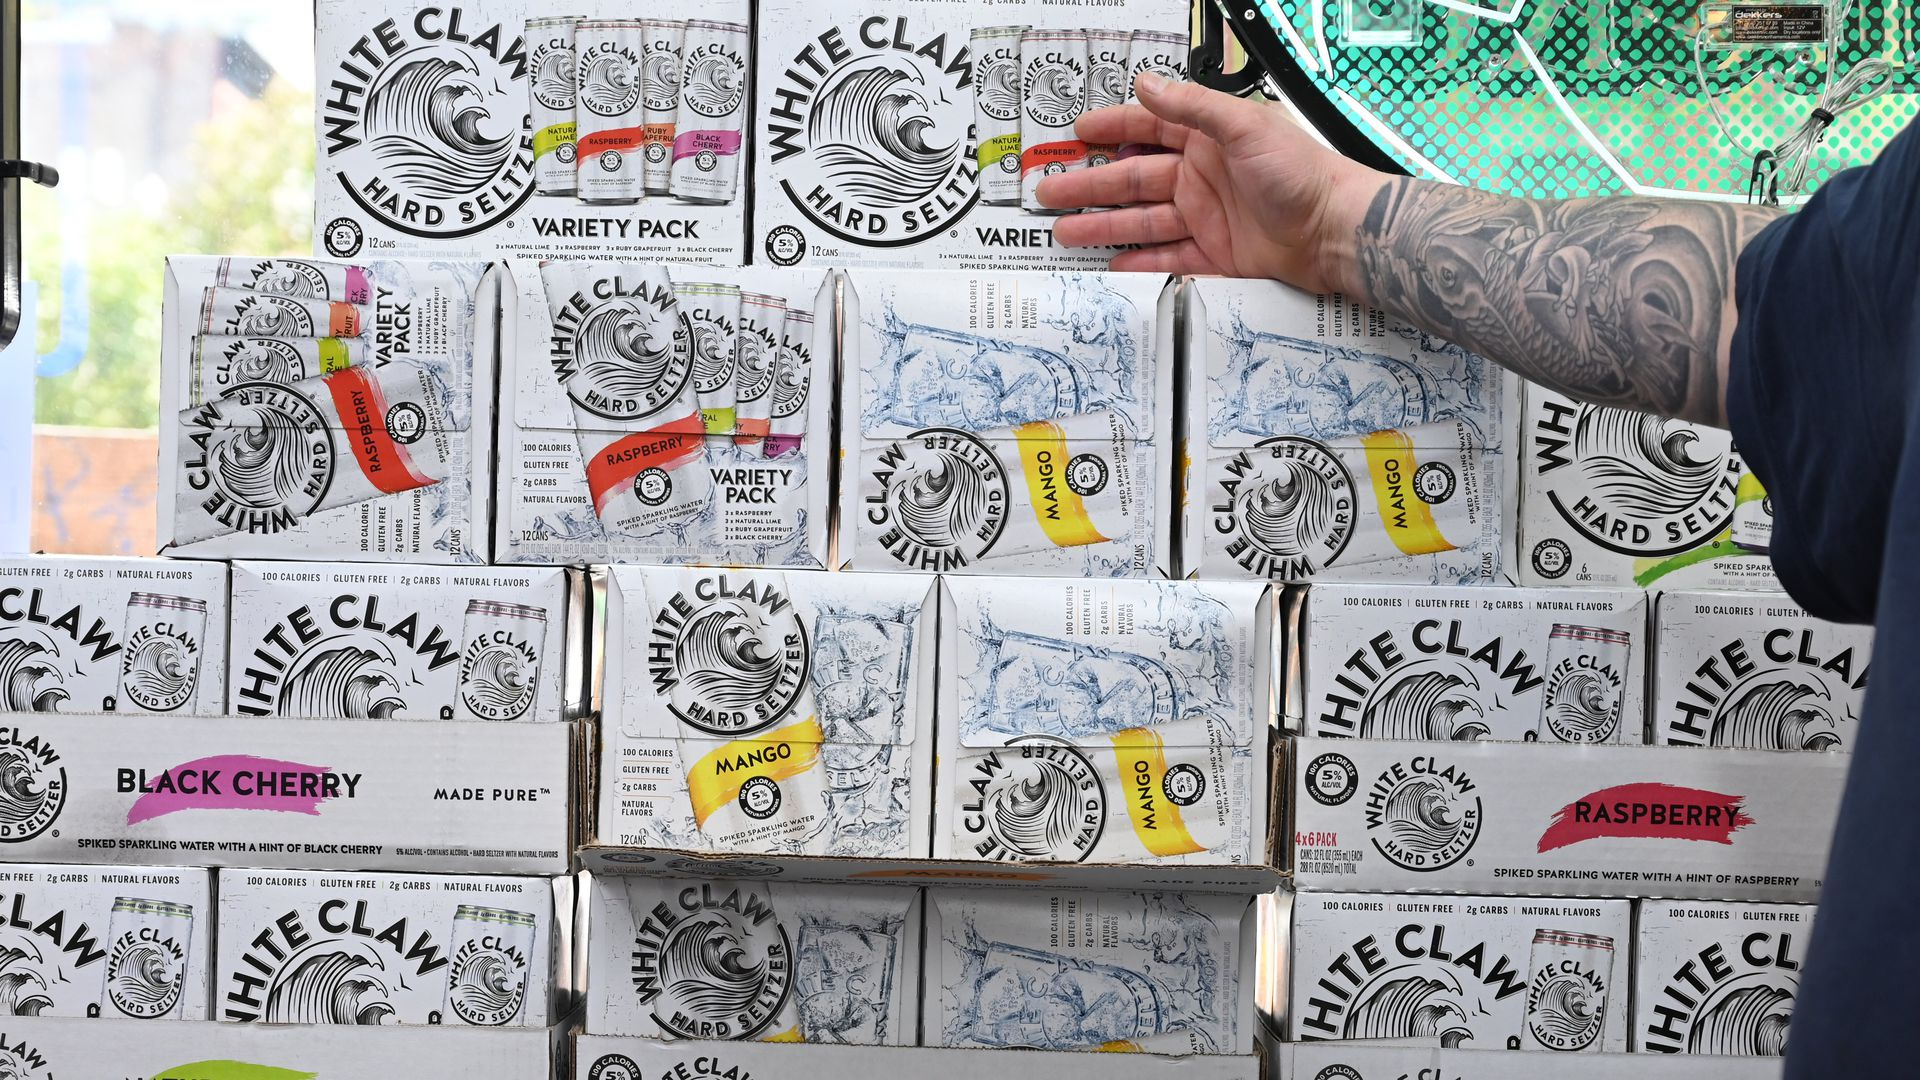 A stack of cases of White Claw